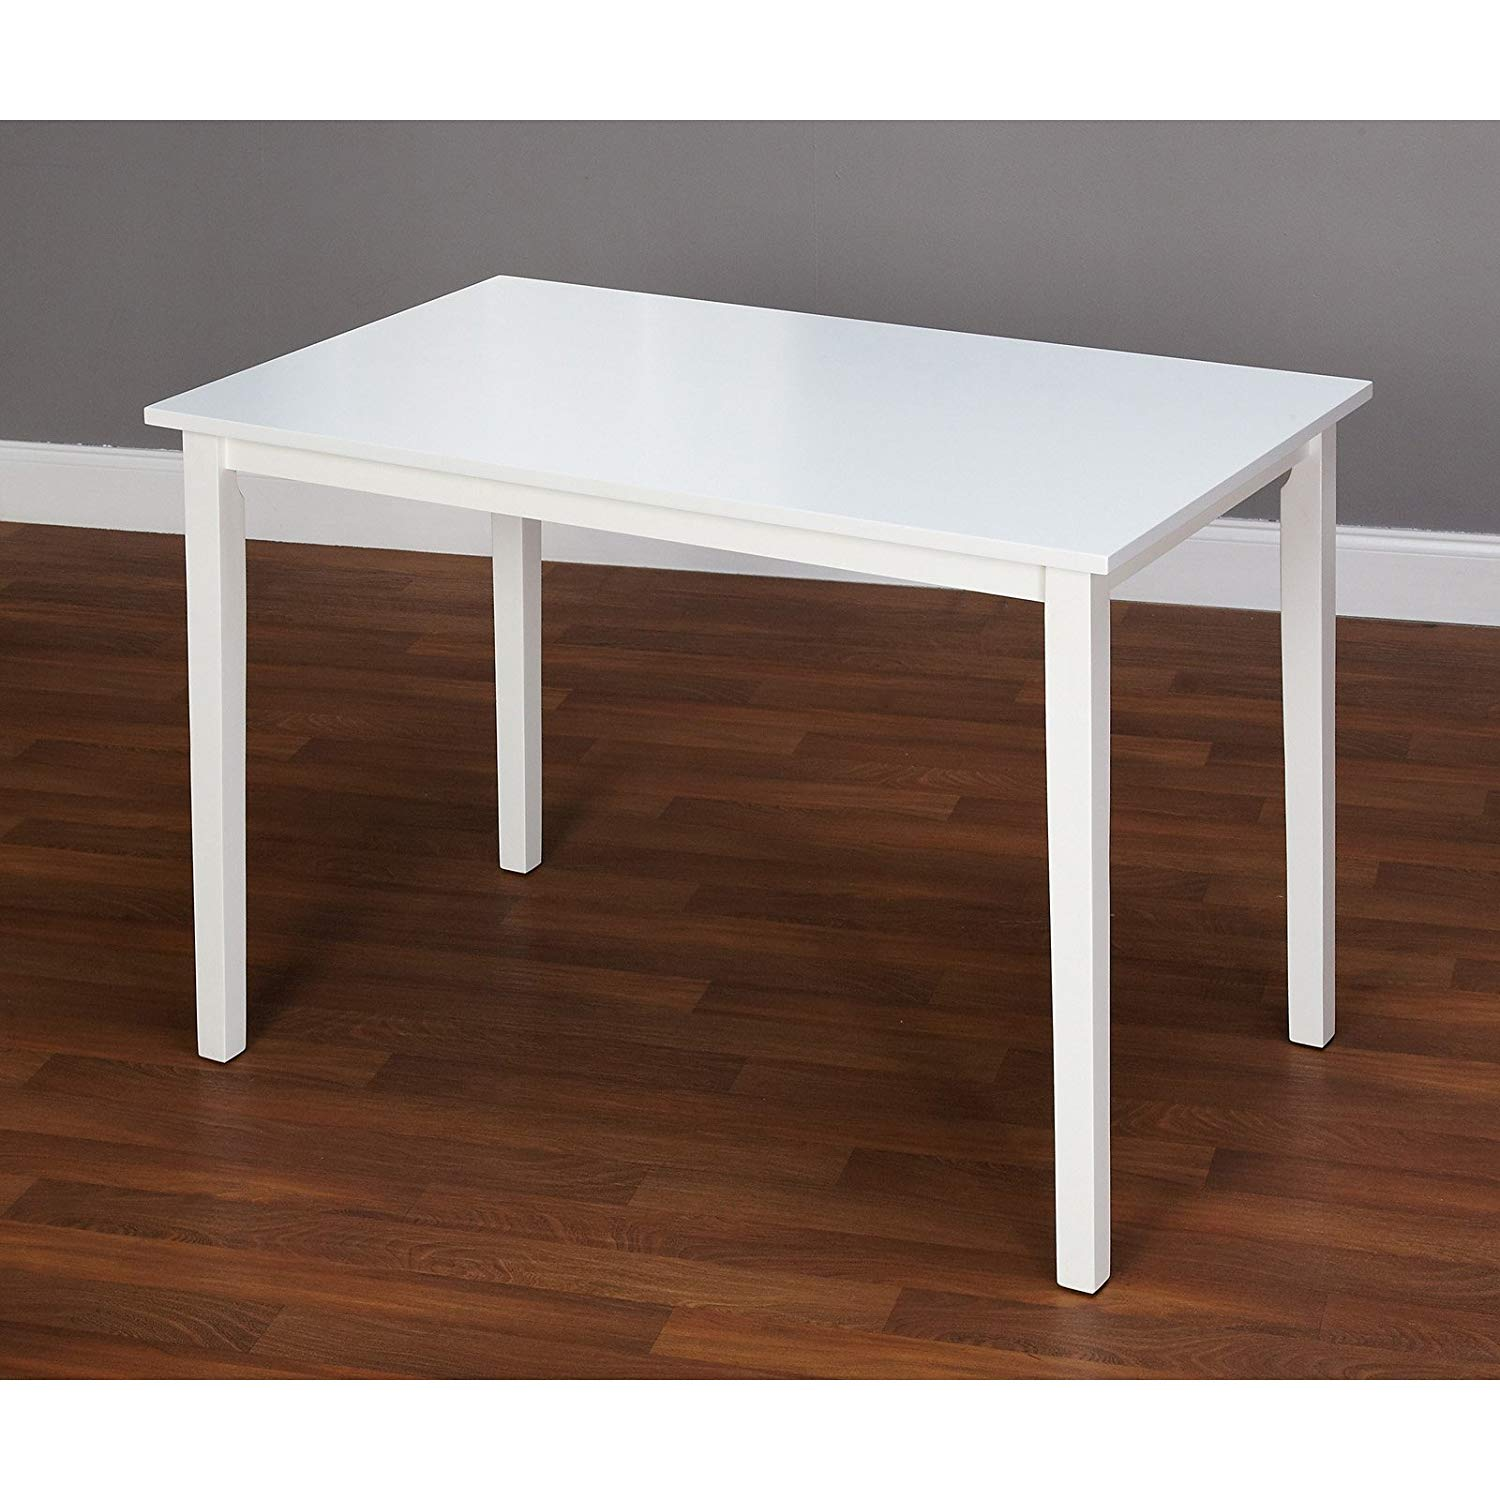 Contemporary Design Functional Dining Table, Sturdy MDF and Durable Rubber Wood Materials, Makes an Outstanding Kitchen Nook or Living Room Table, Seats Up to Four People Comfortable + Expert Guide